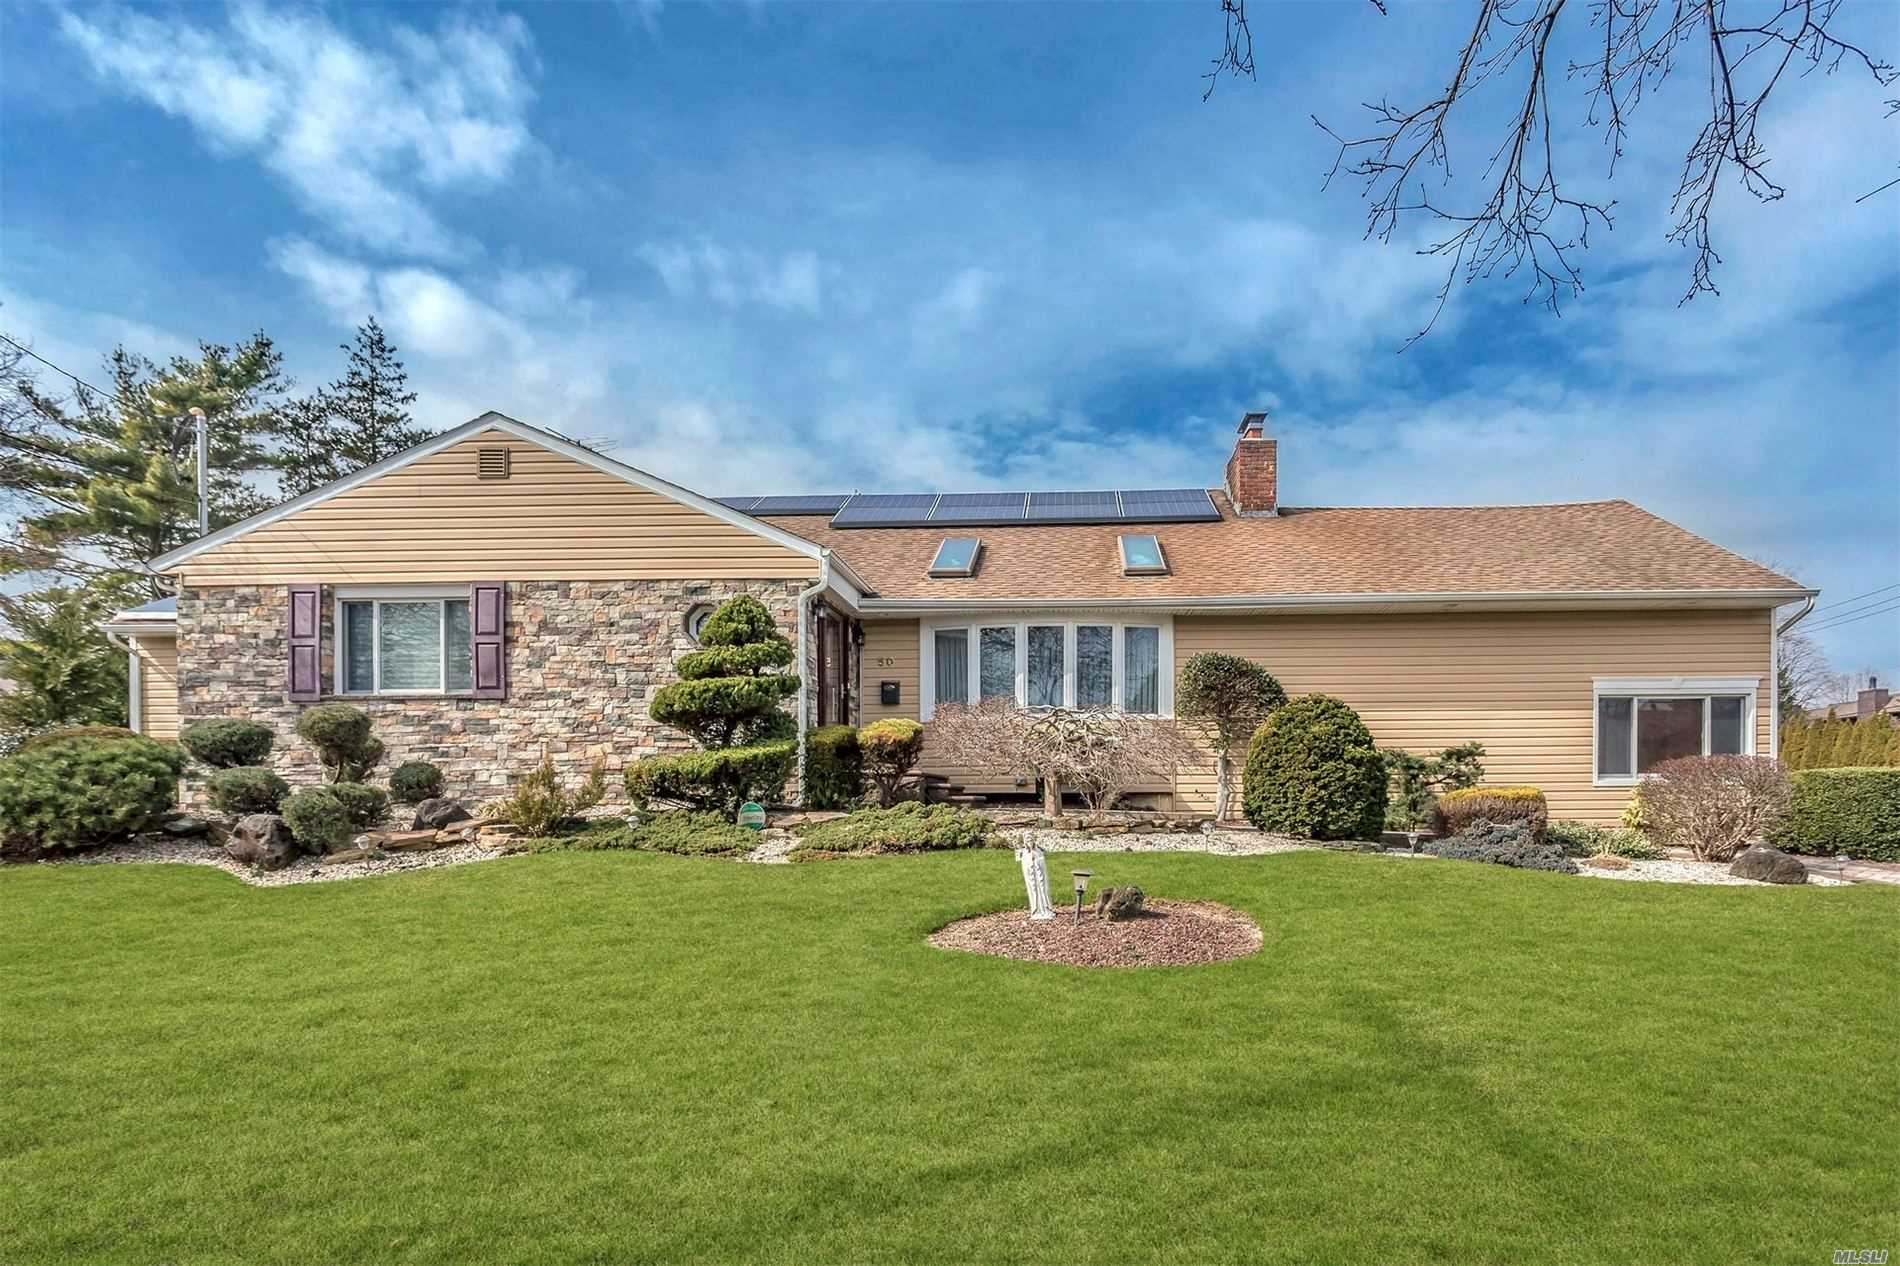 50 Birch Lane, Massapequa Park, New York